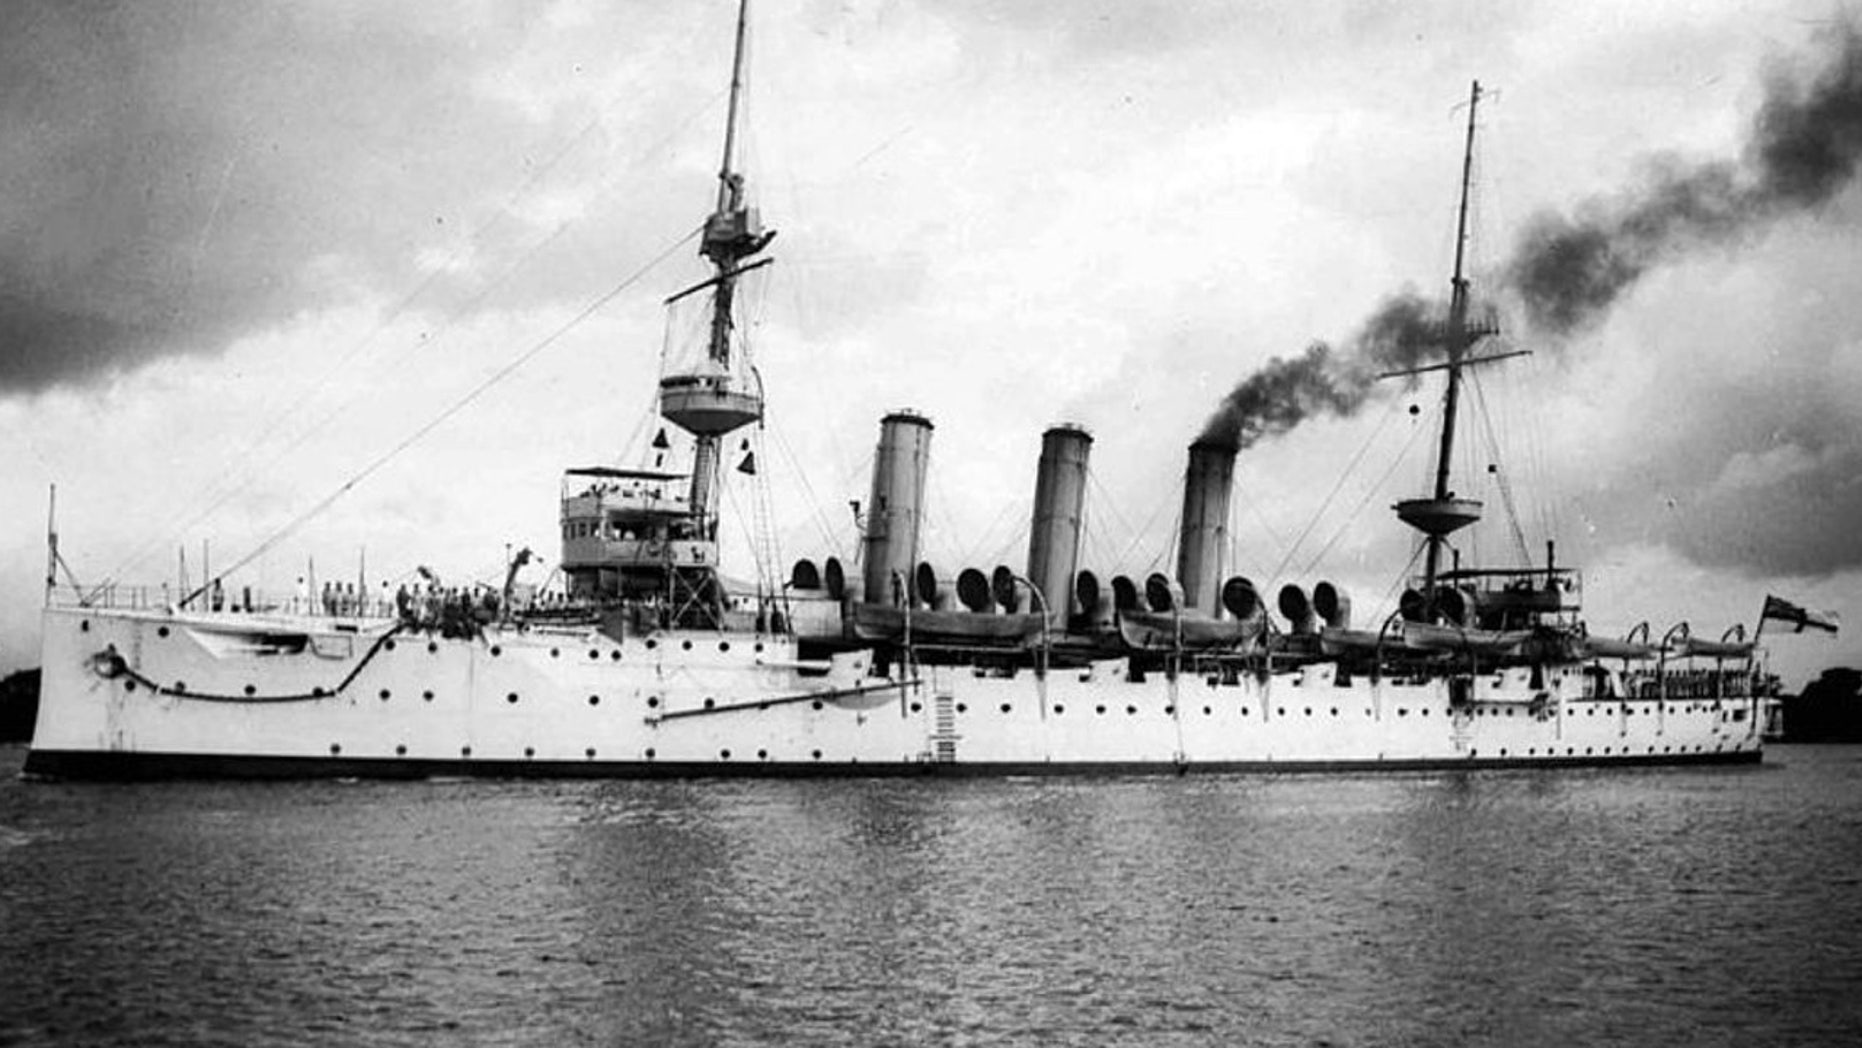 The Royal Navy's HMS Hermes was sunk by a German U-boat in 1914.